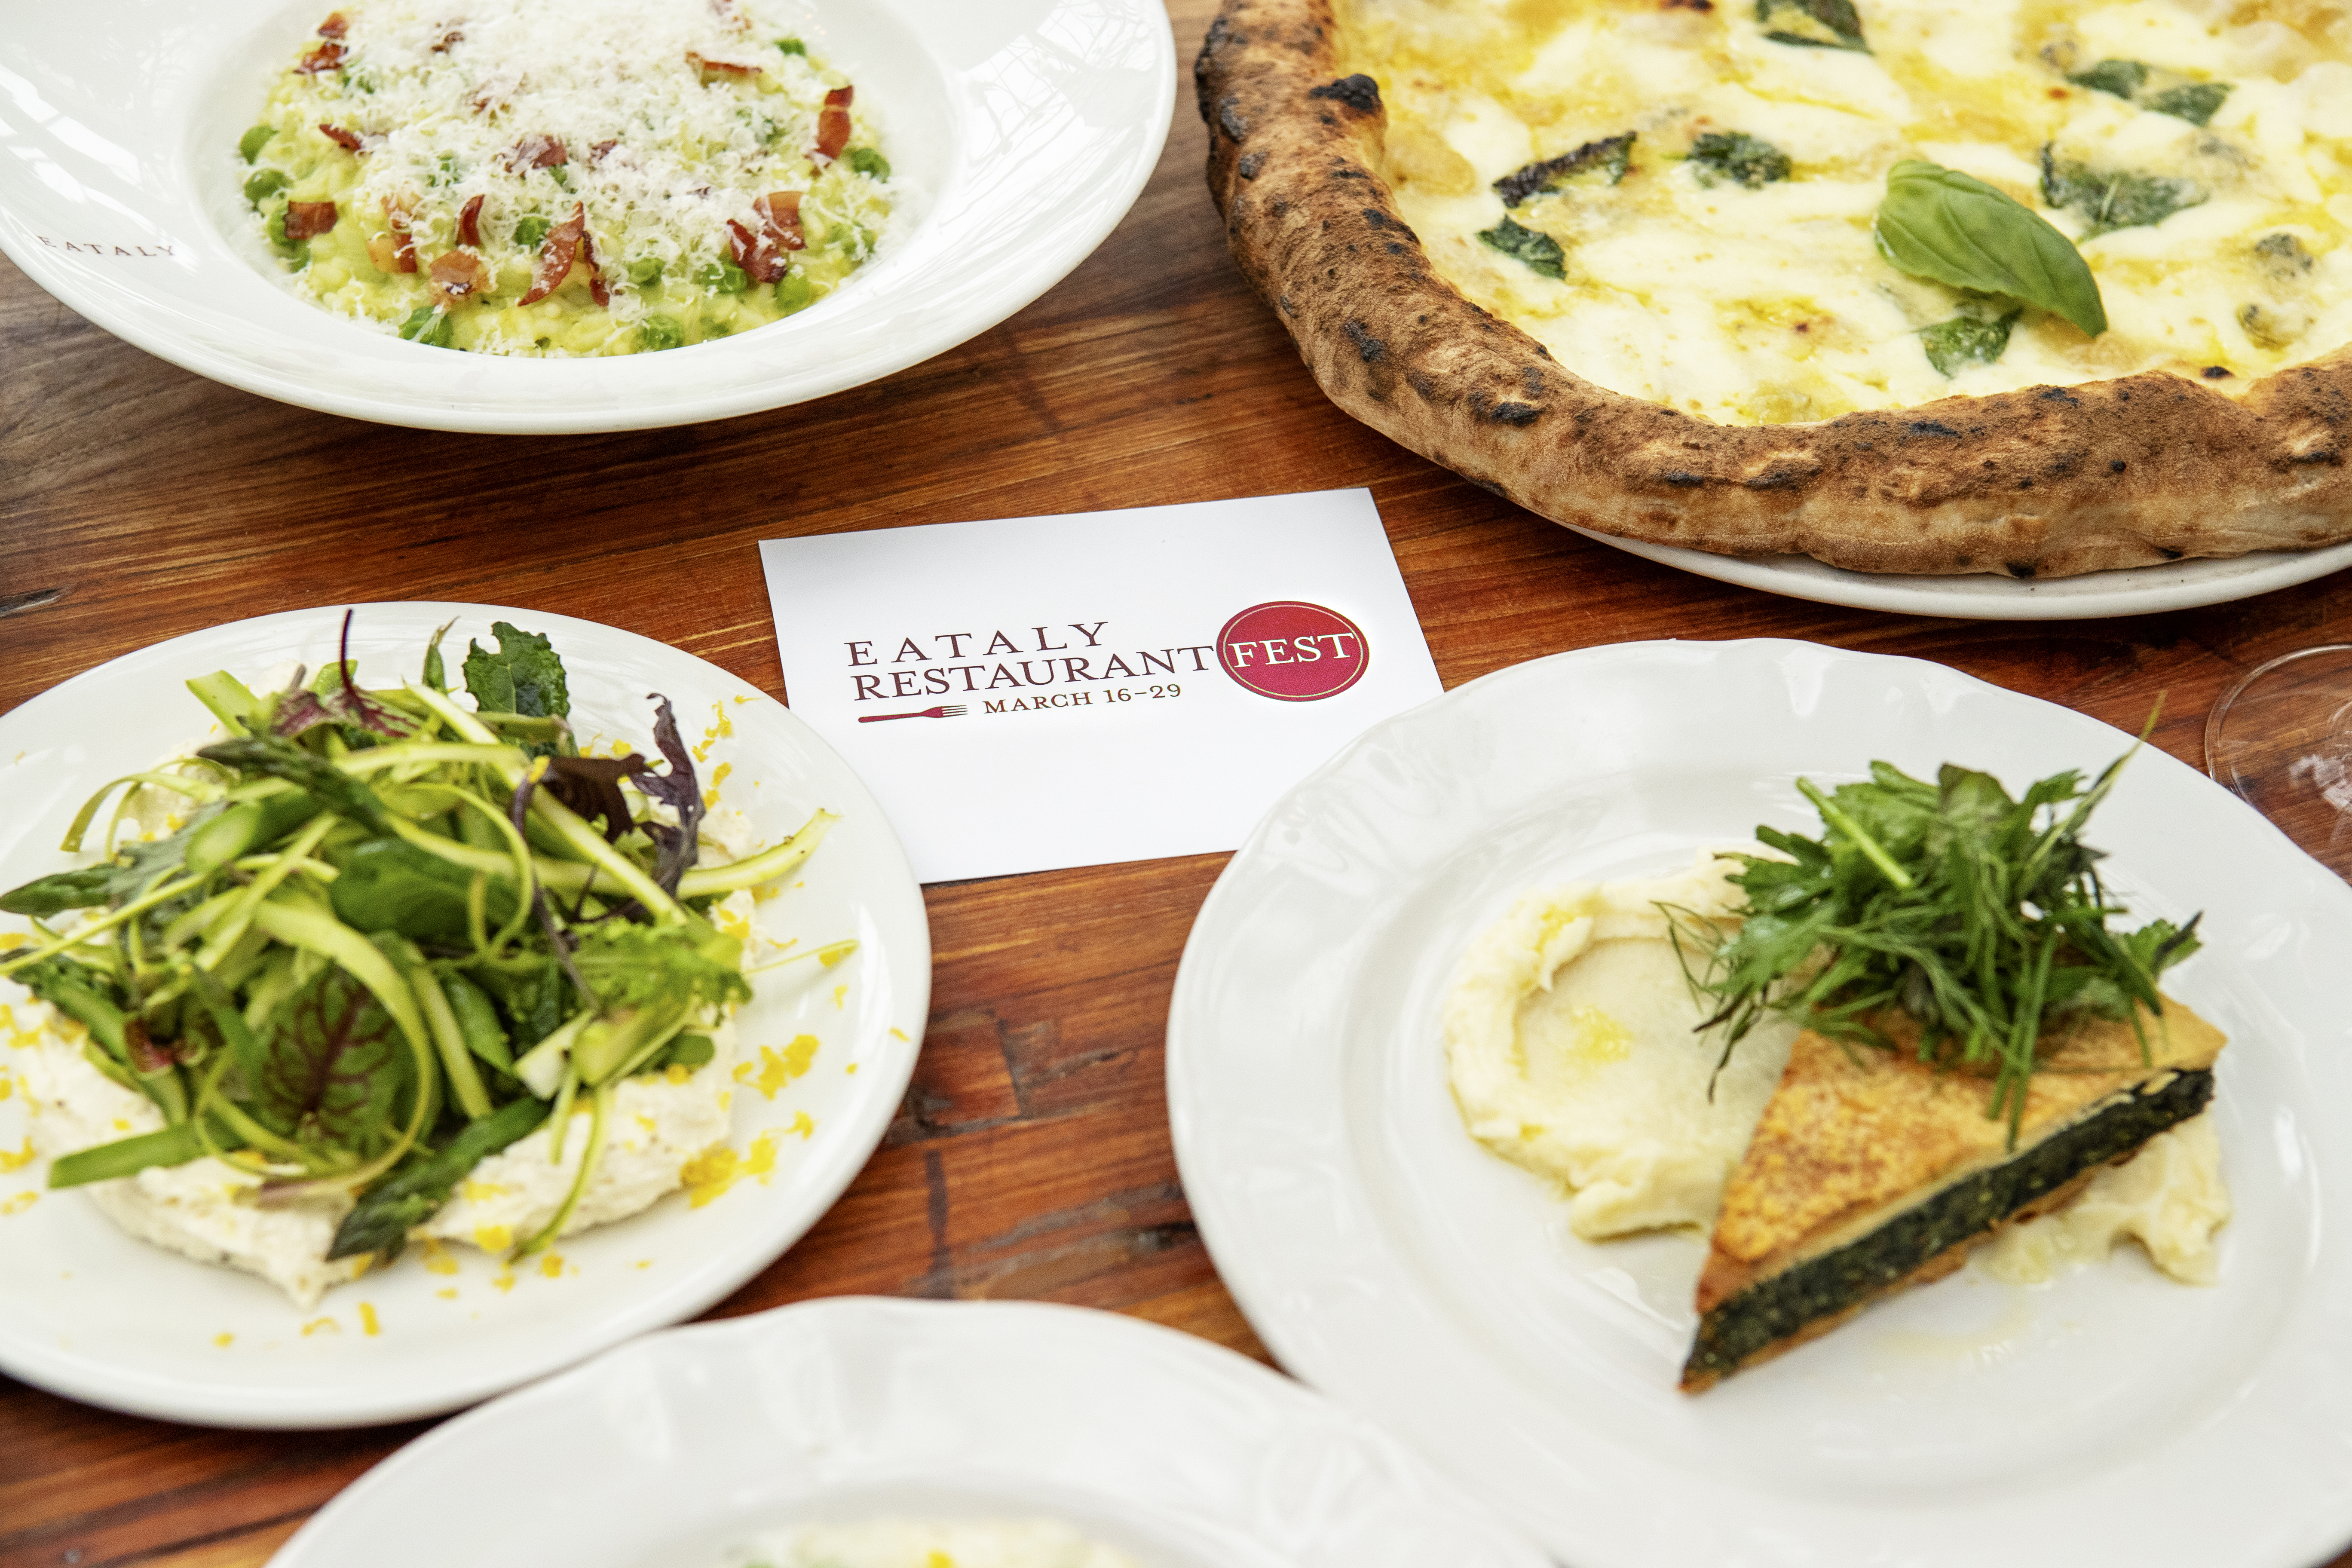 Restaurant Fest at Eataly Downtown